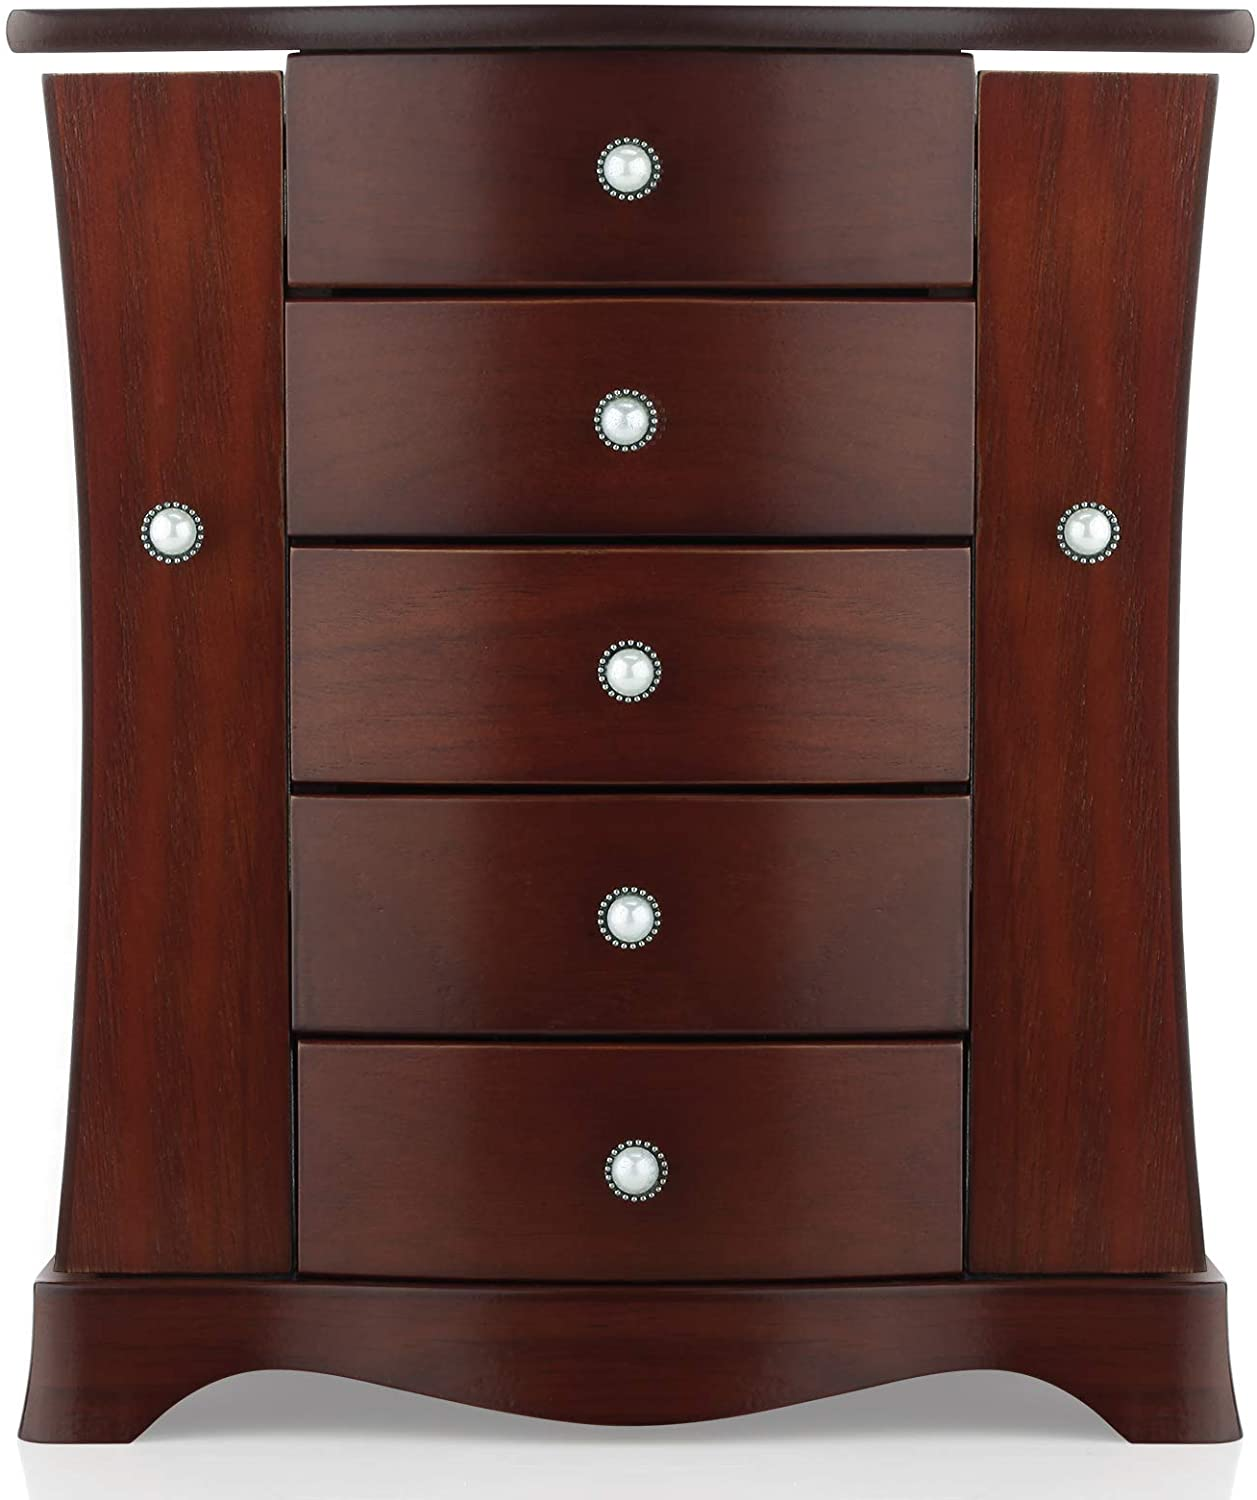 Jewelry Box - Made of Solid Wood with Tower Style 4 Drawers Organizer and 2 Separated Open Doors on 2 Sides and Large Mirror Brown: Home Improvement